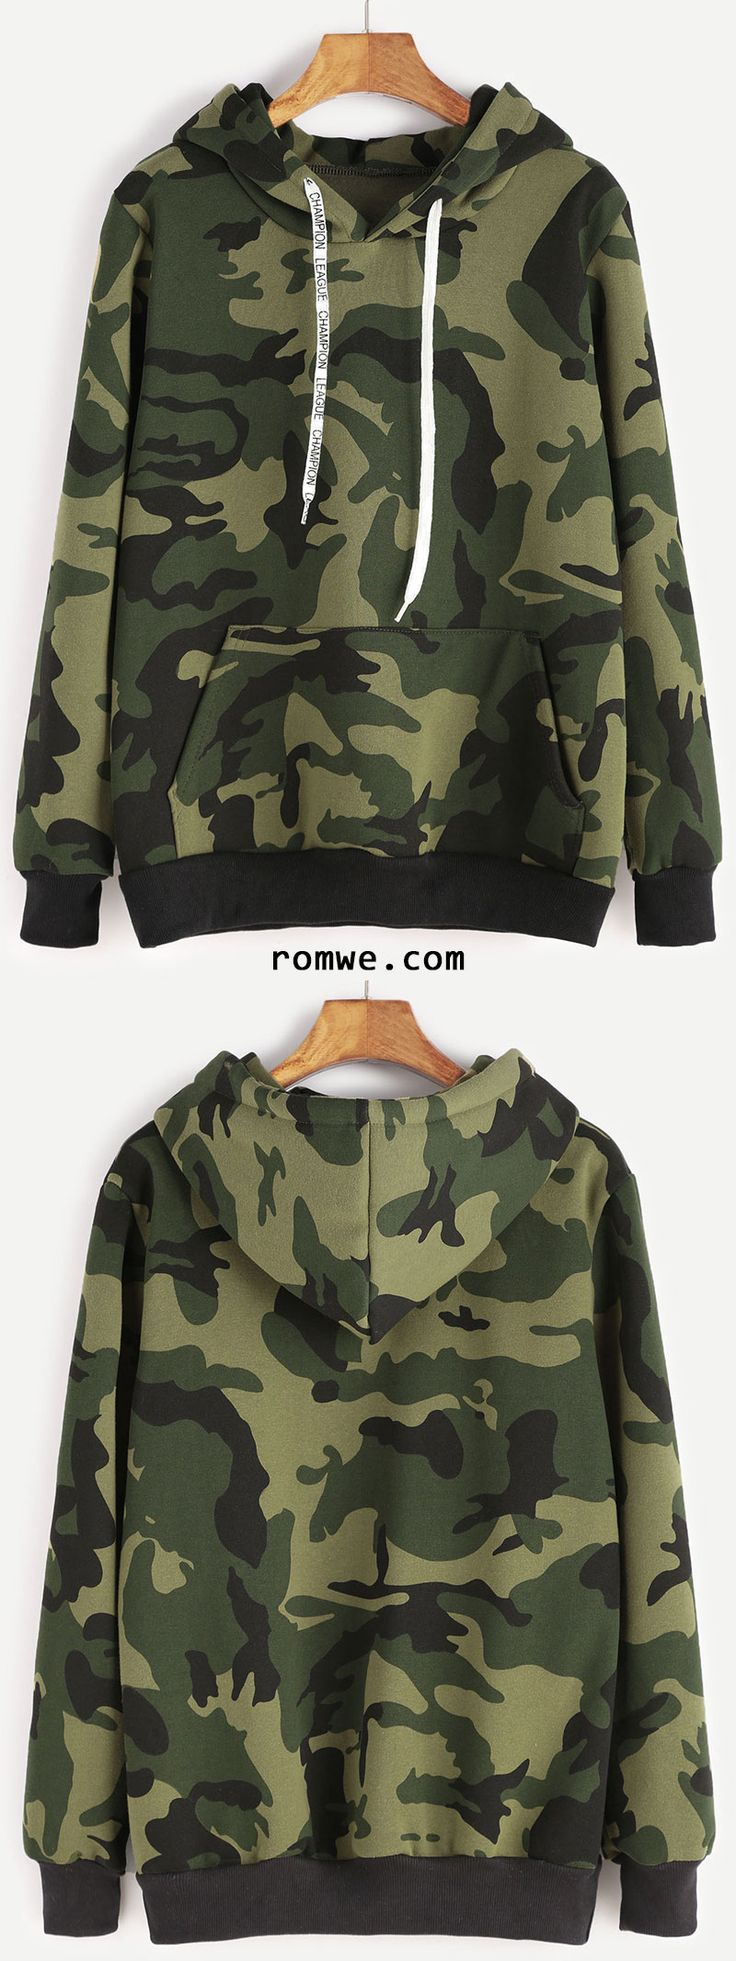 Camo Print Contrast Trim Drawstring Hooded Pocket Sweatshirt